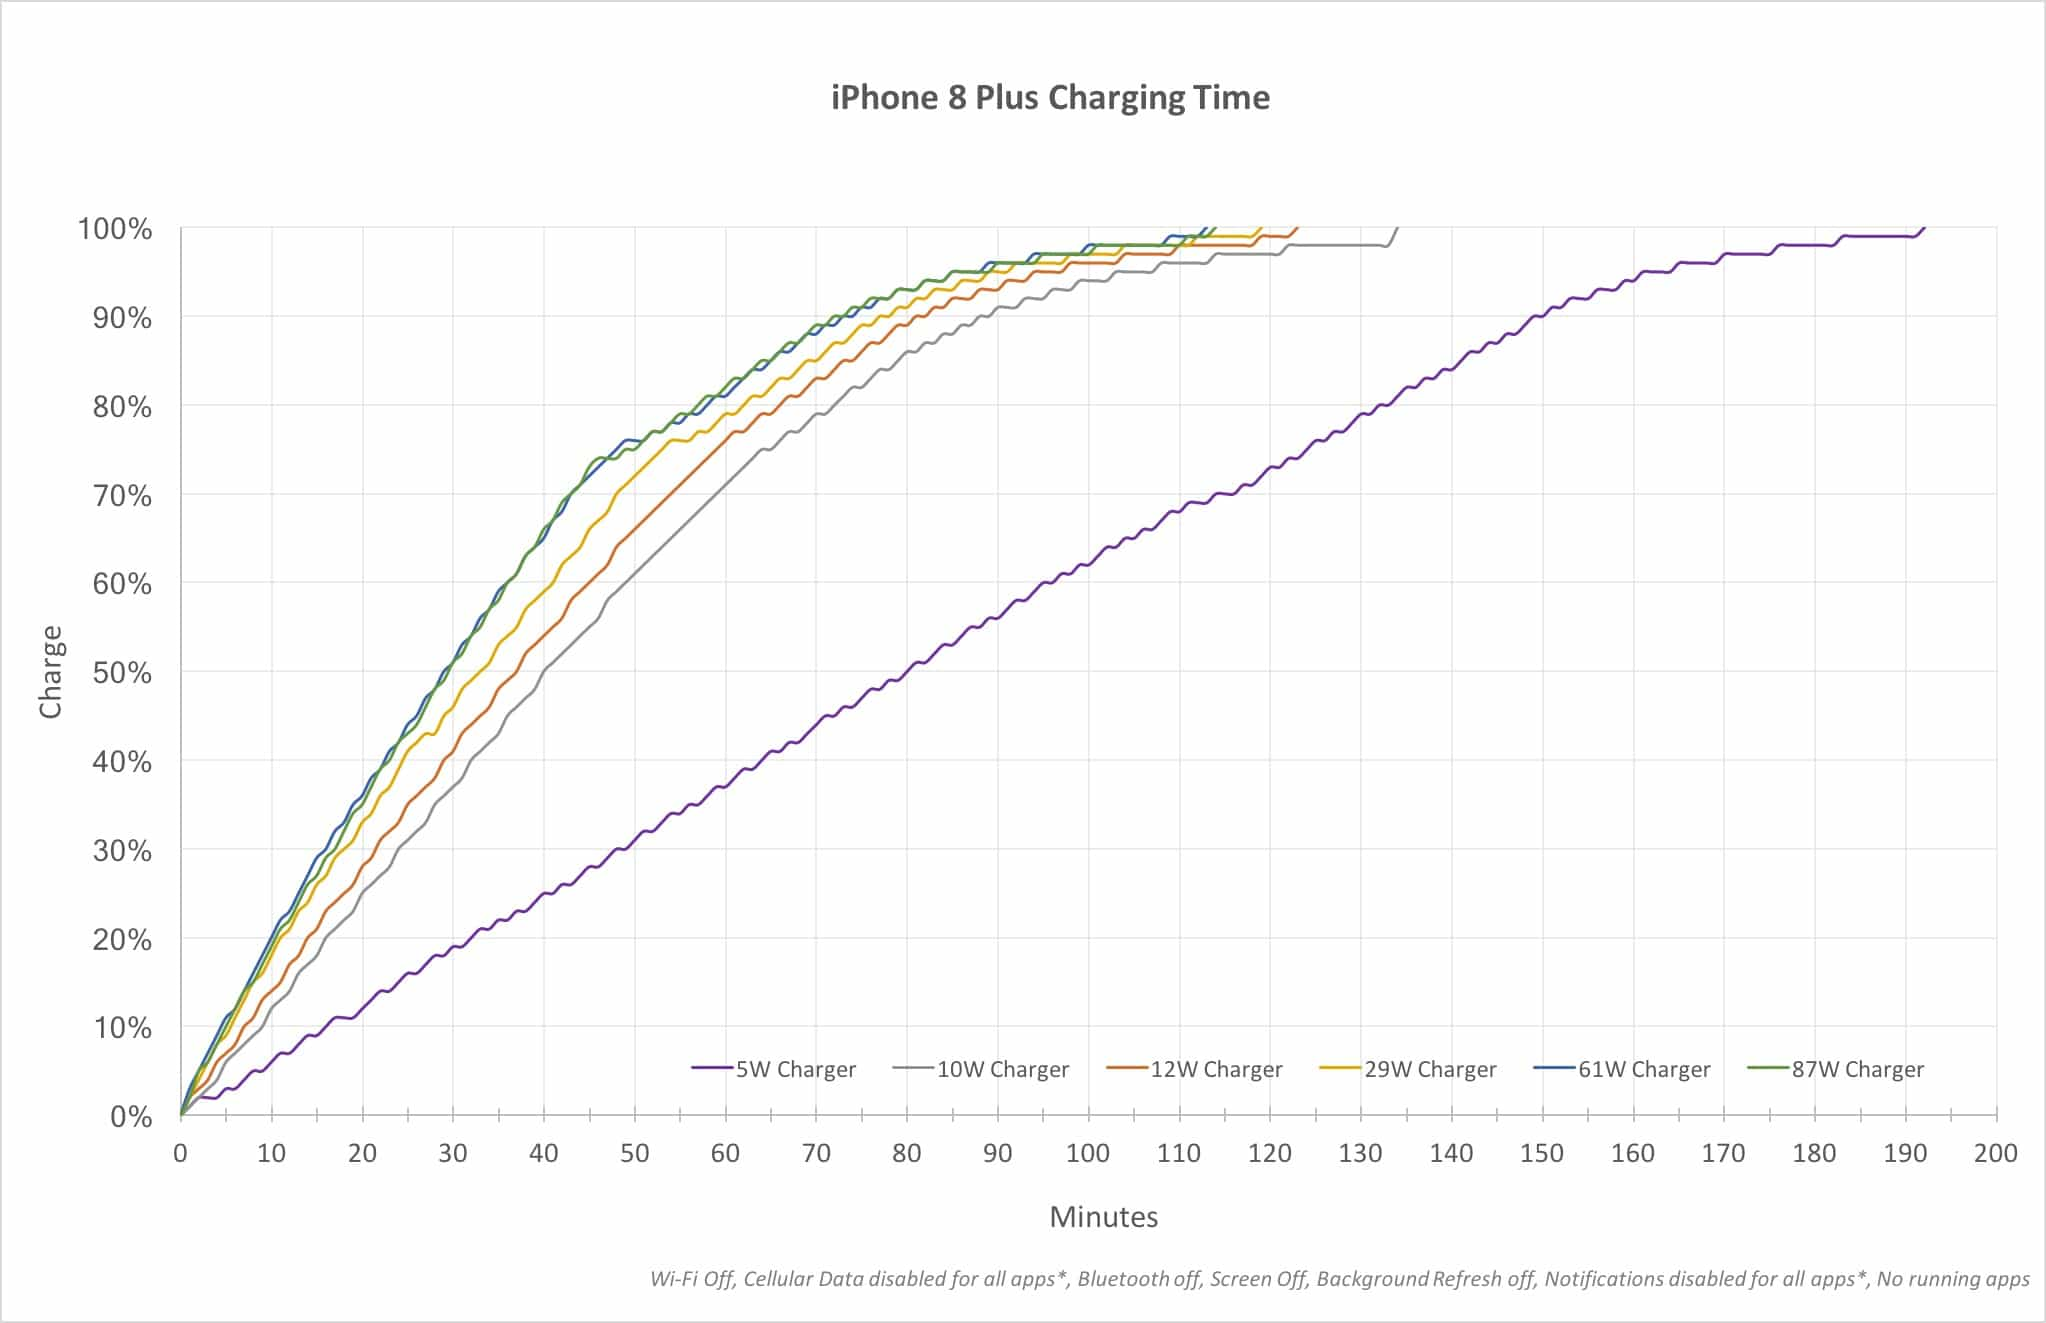 Everything is faster than the little iPhone charger.